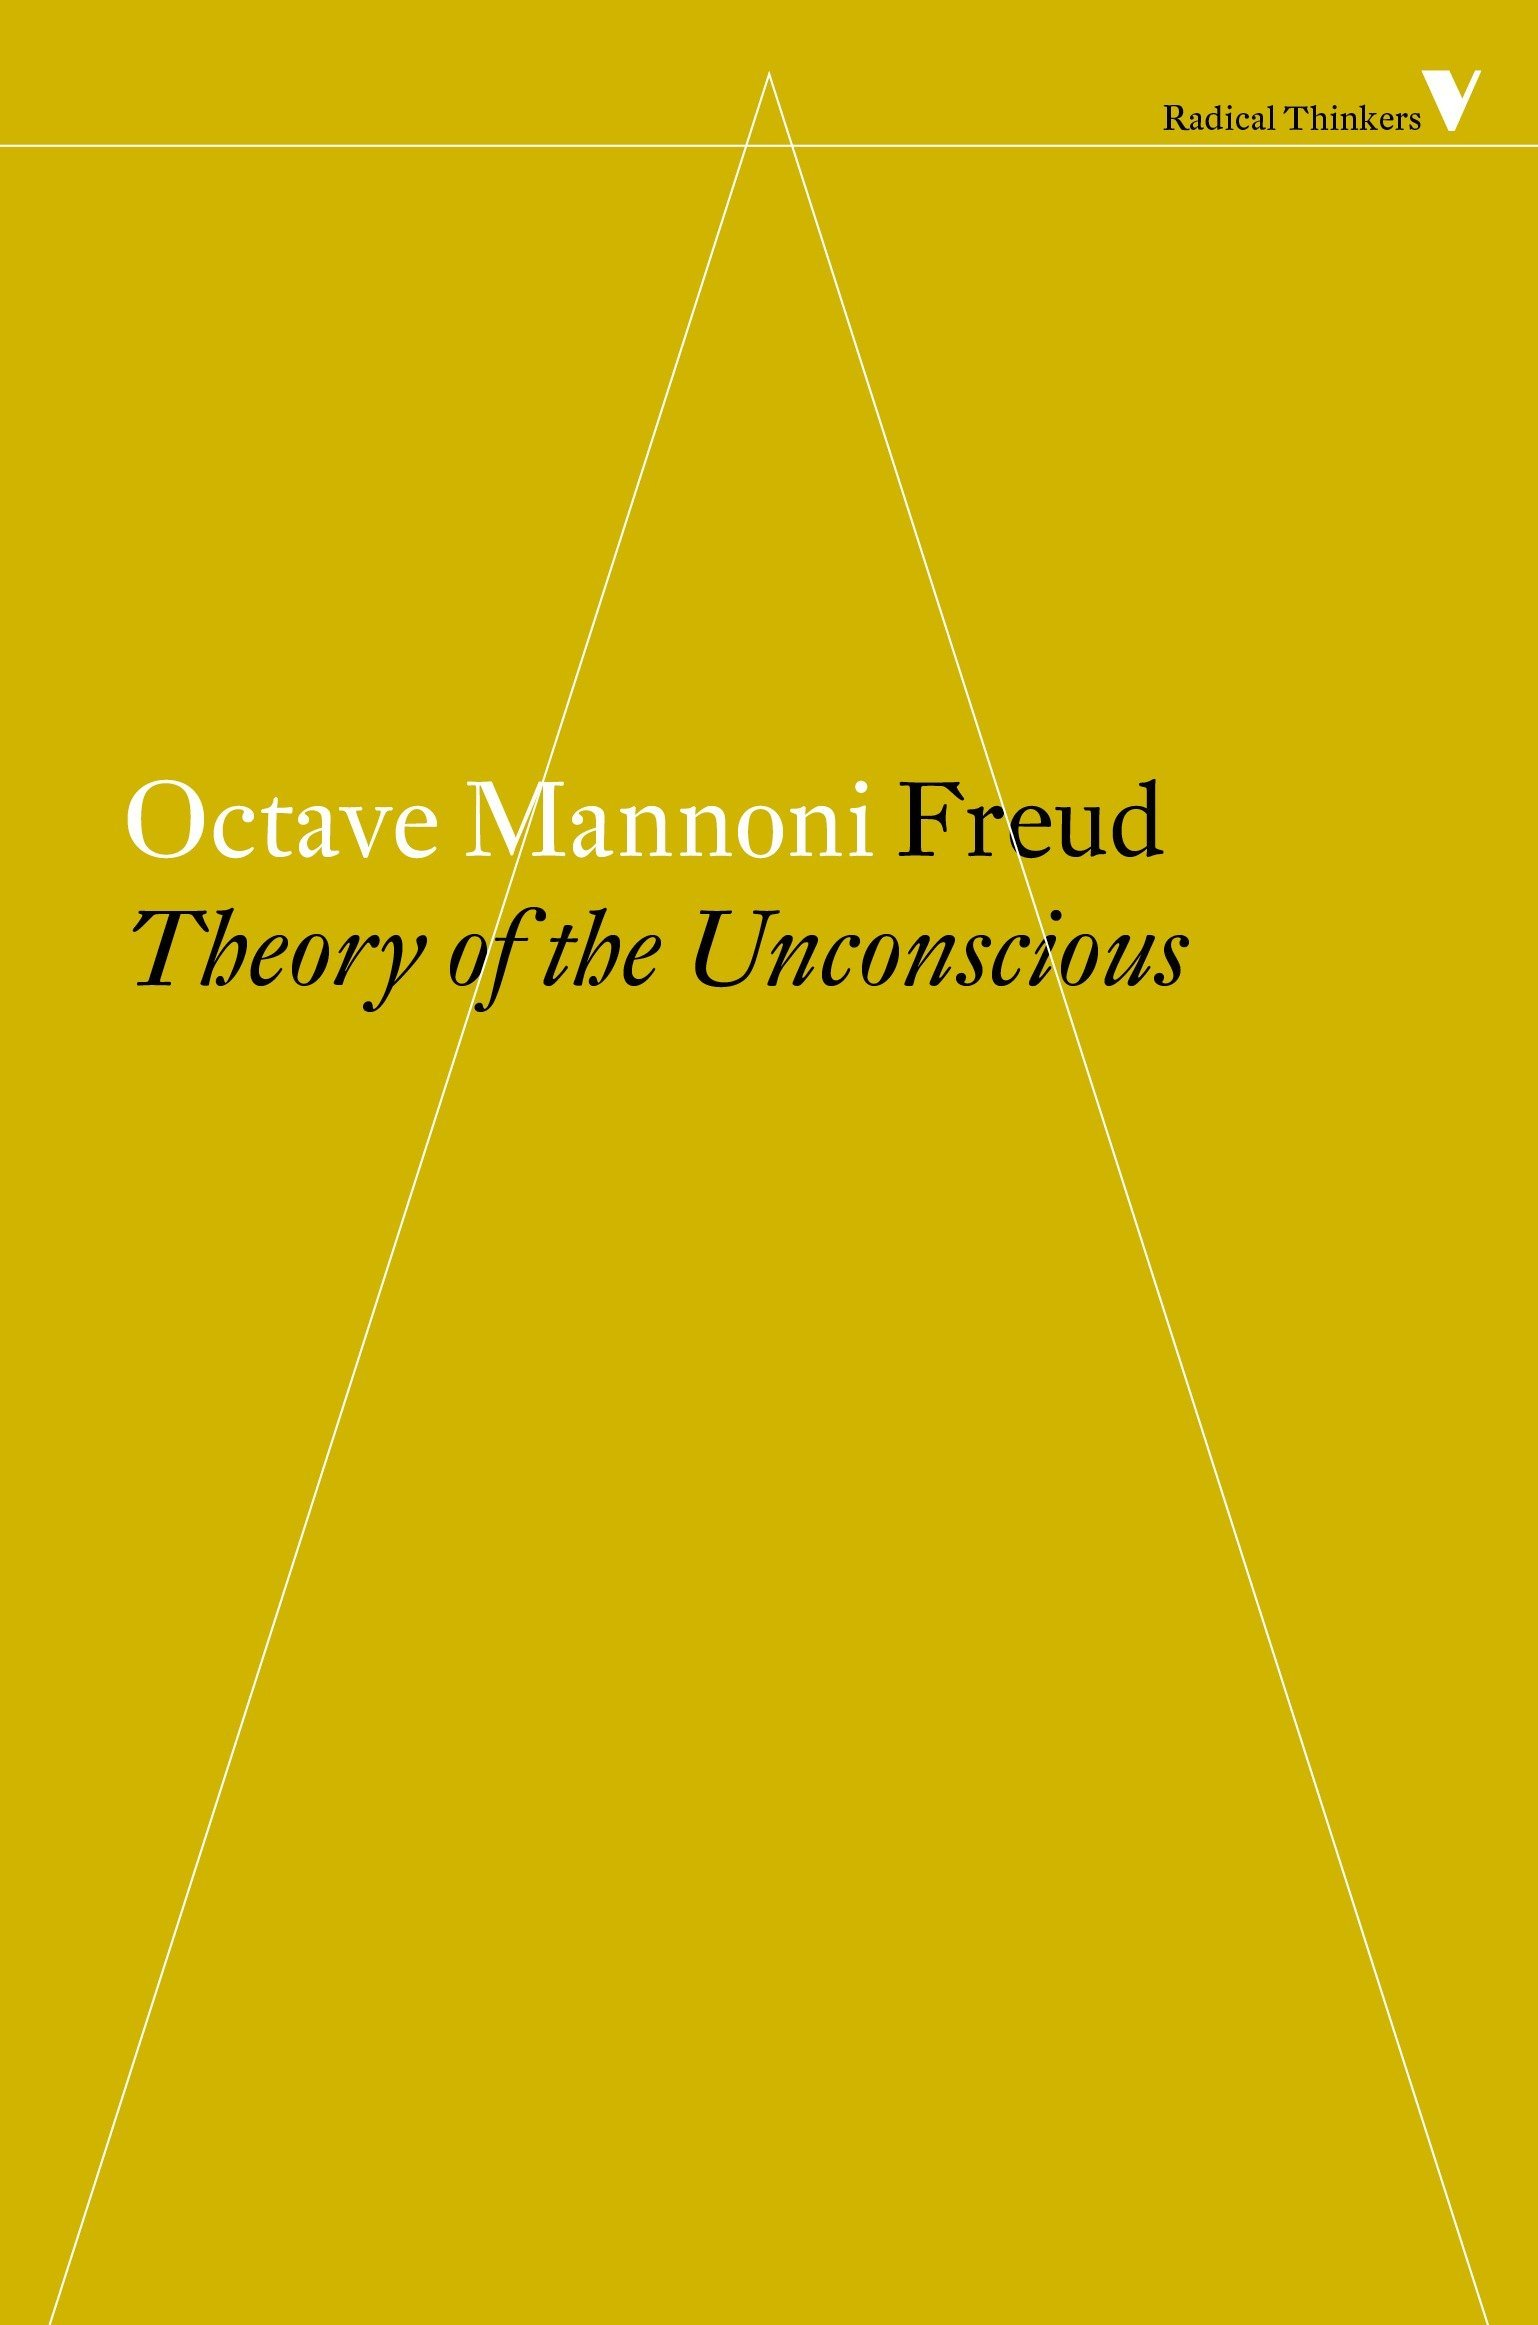 Freud: The Theory of the Unconscious (Radical Thinkers) ebook